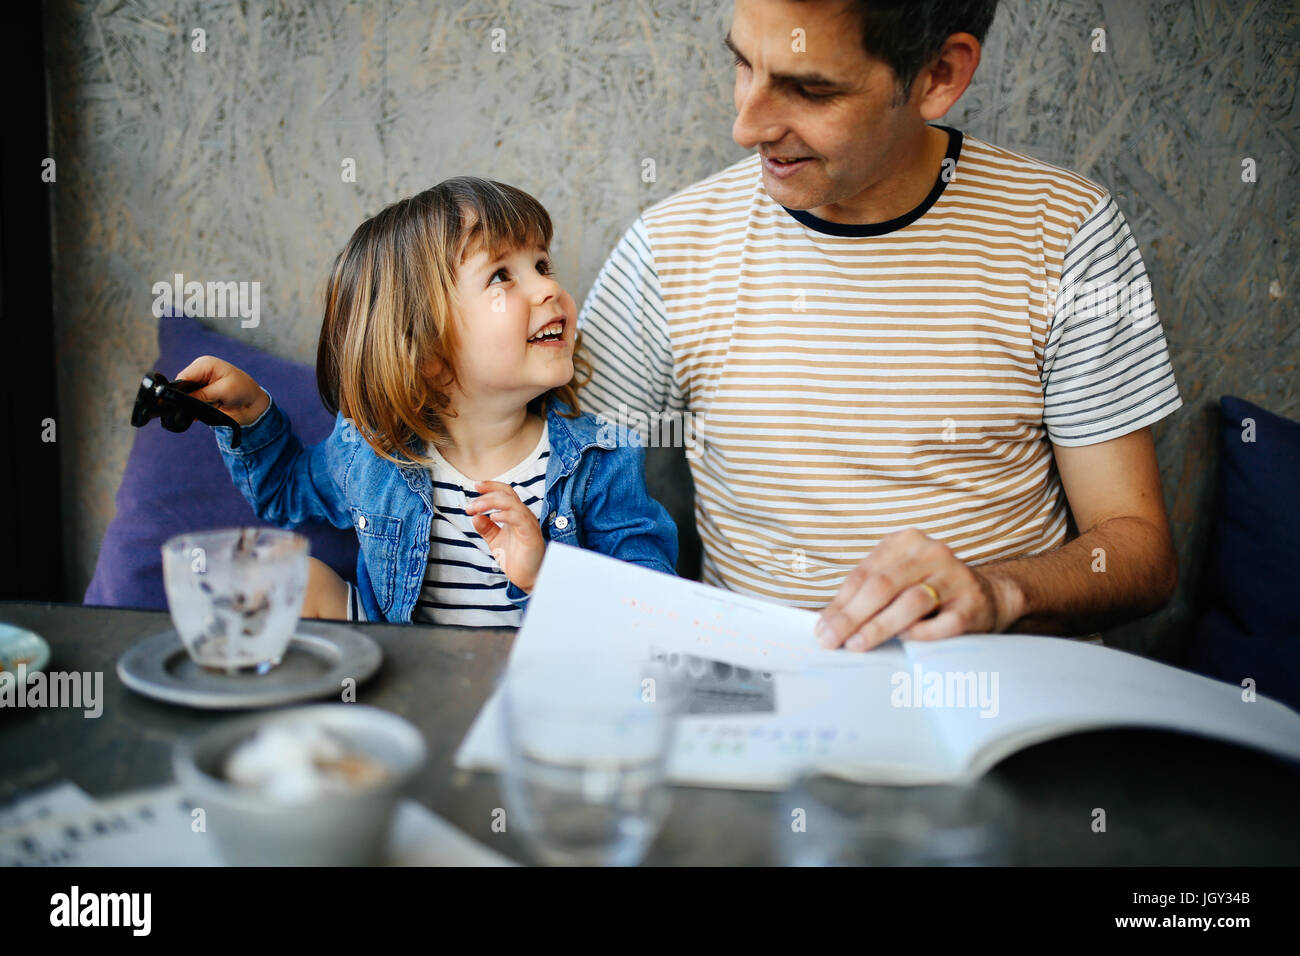 Girl playing with father's sunglasses in cafe - Stock Image